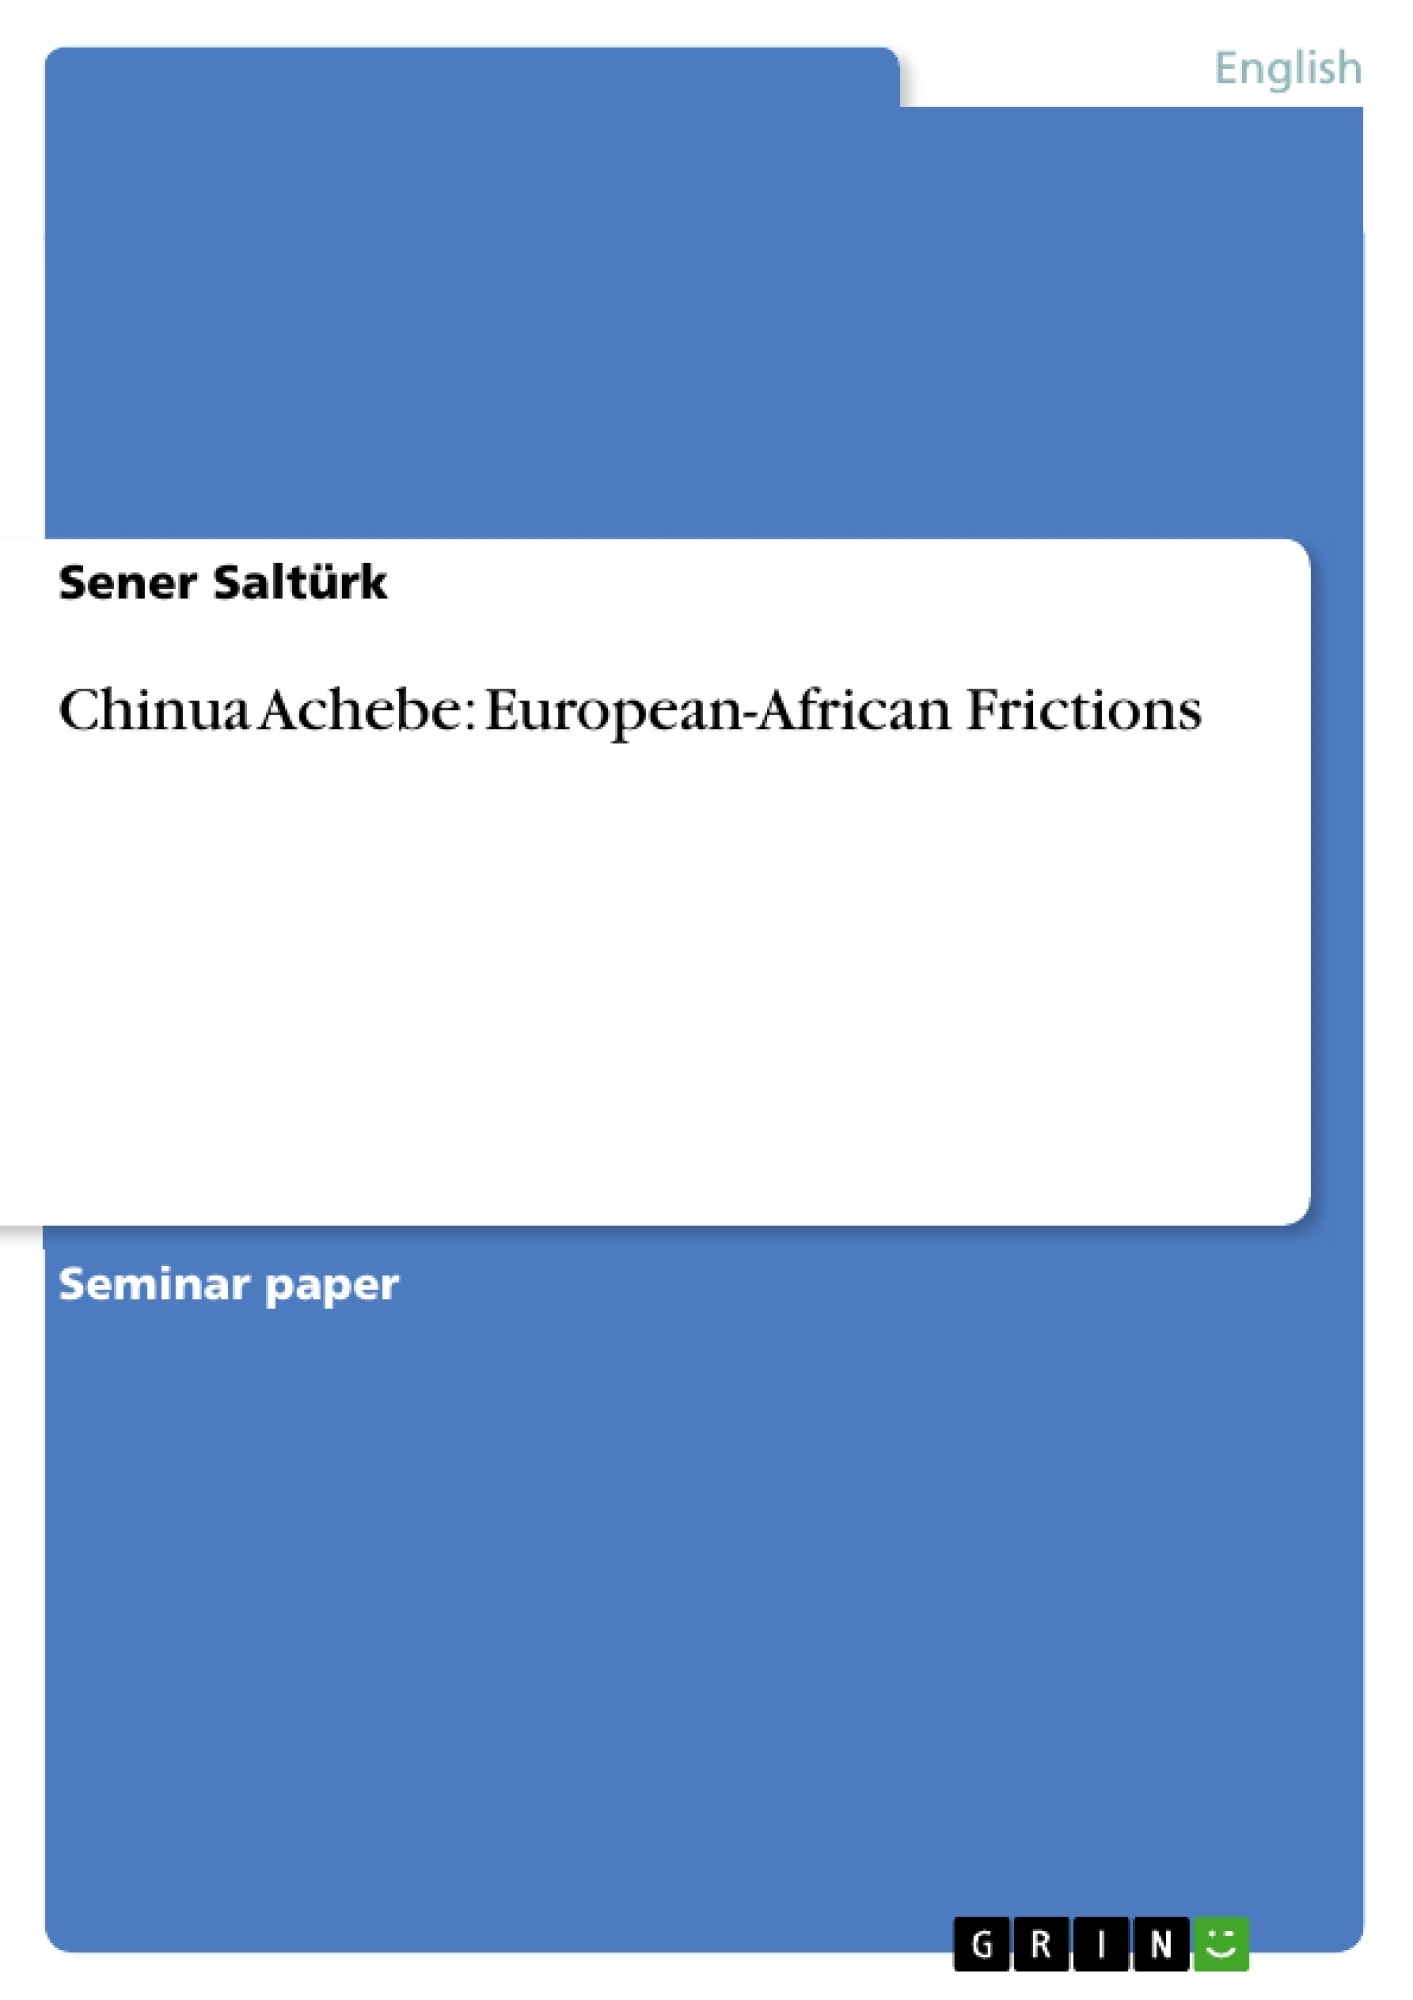 Title: Chinua Achebe: European-African Frictions